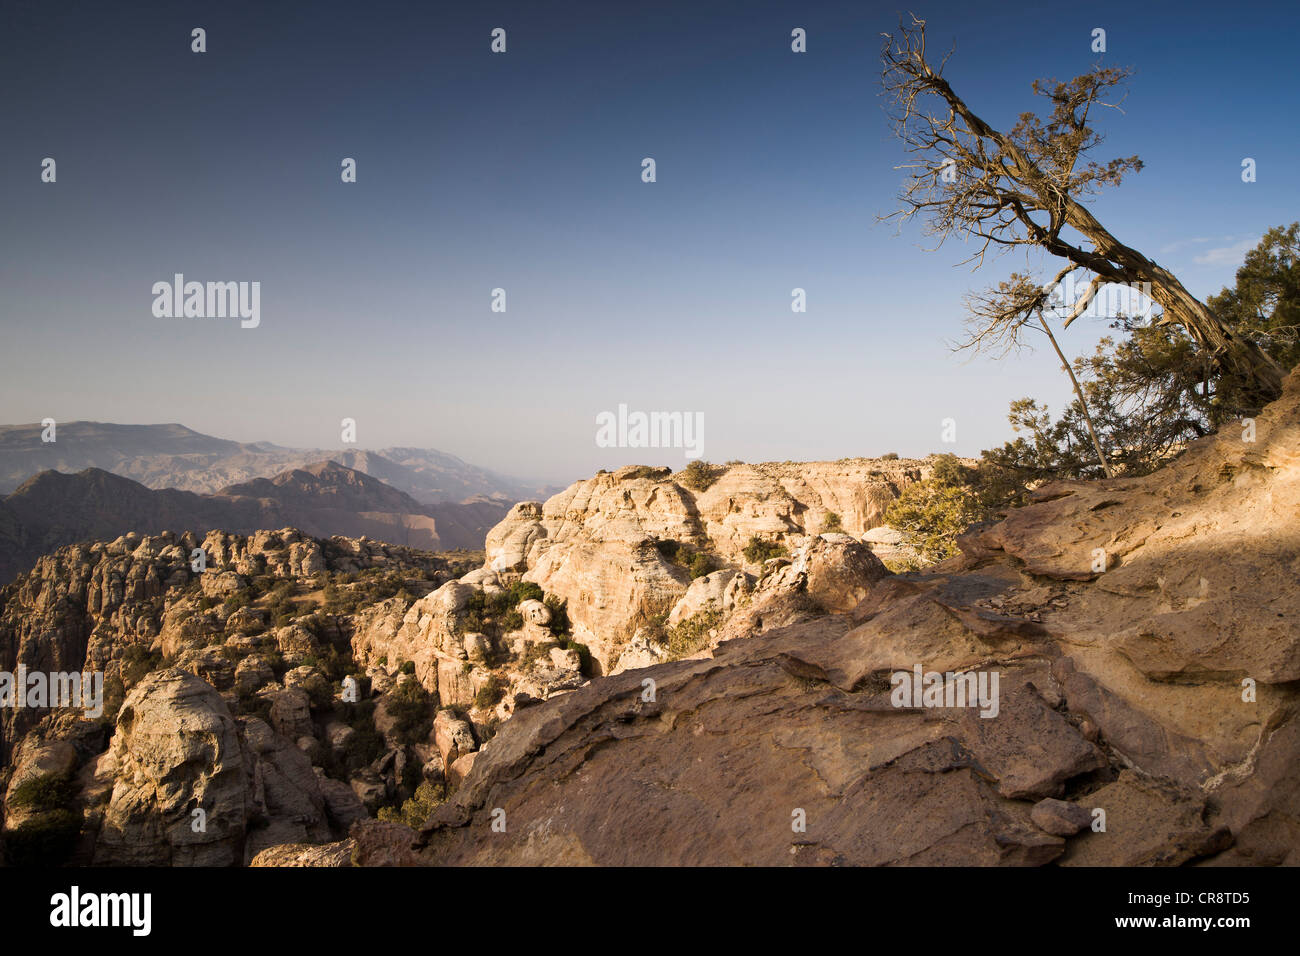 Oblique-growing tree, Dana Nature Reserve, Jordan, Middle East, Asia - Stock Image